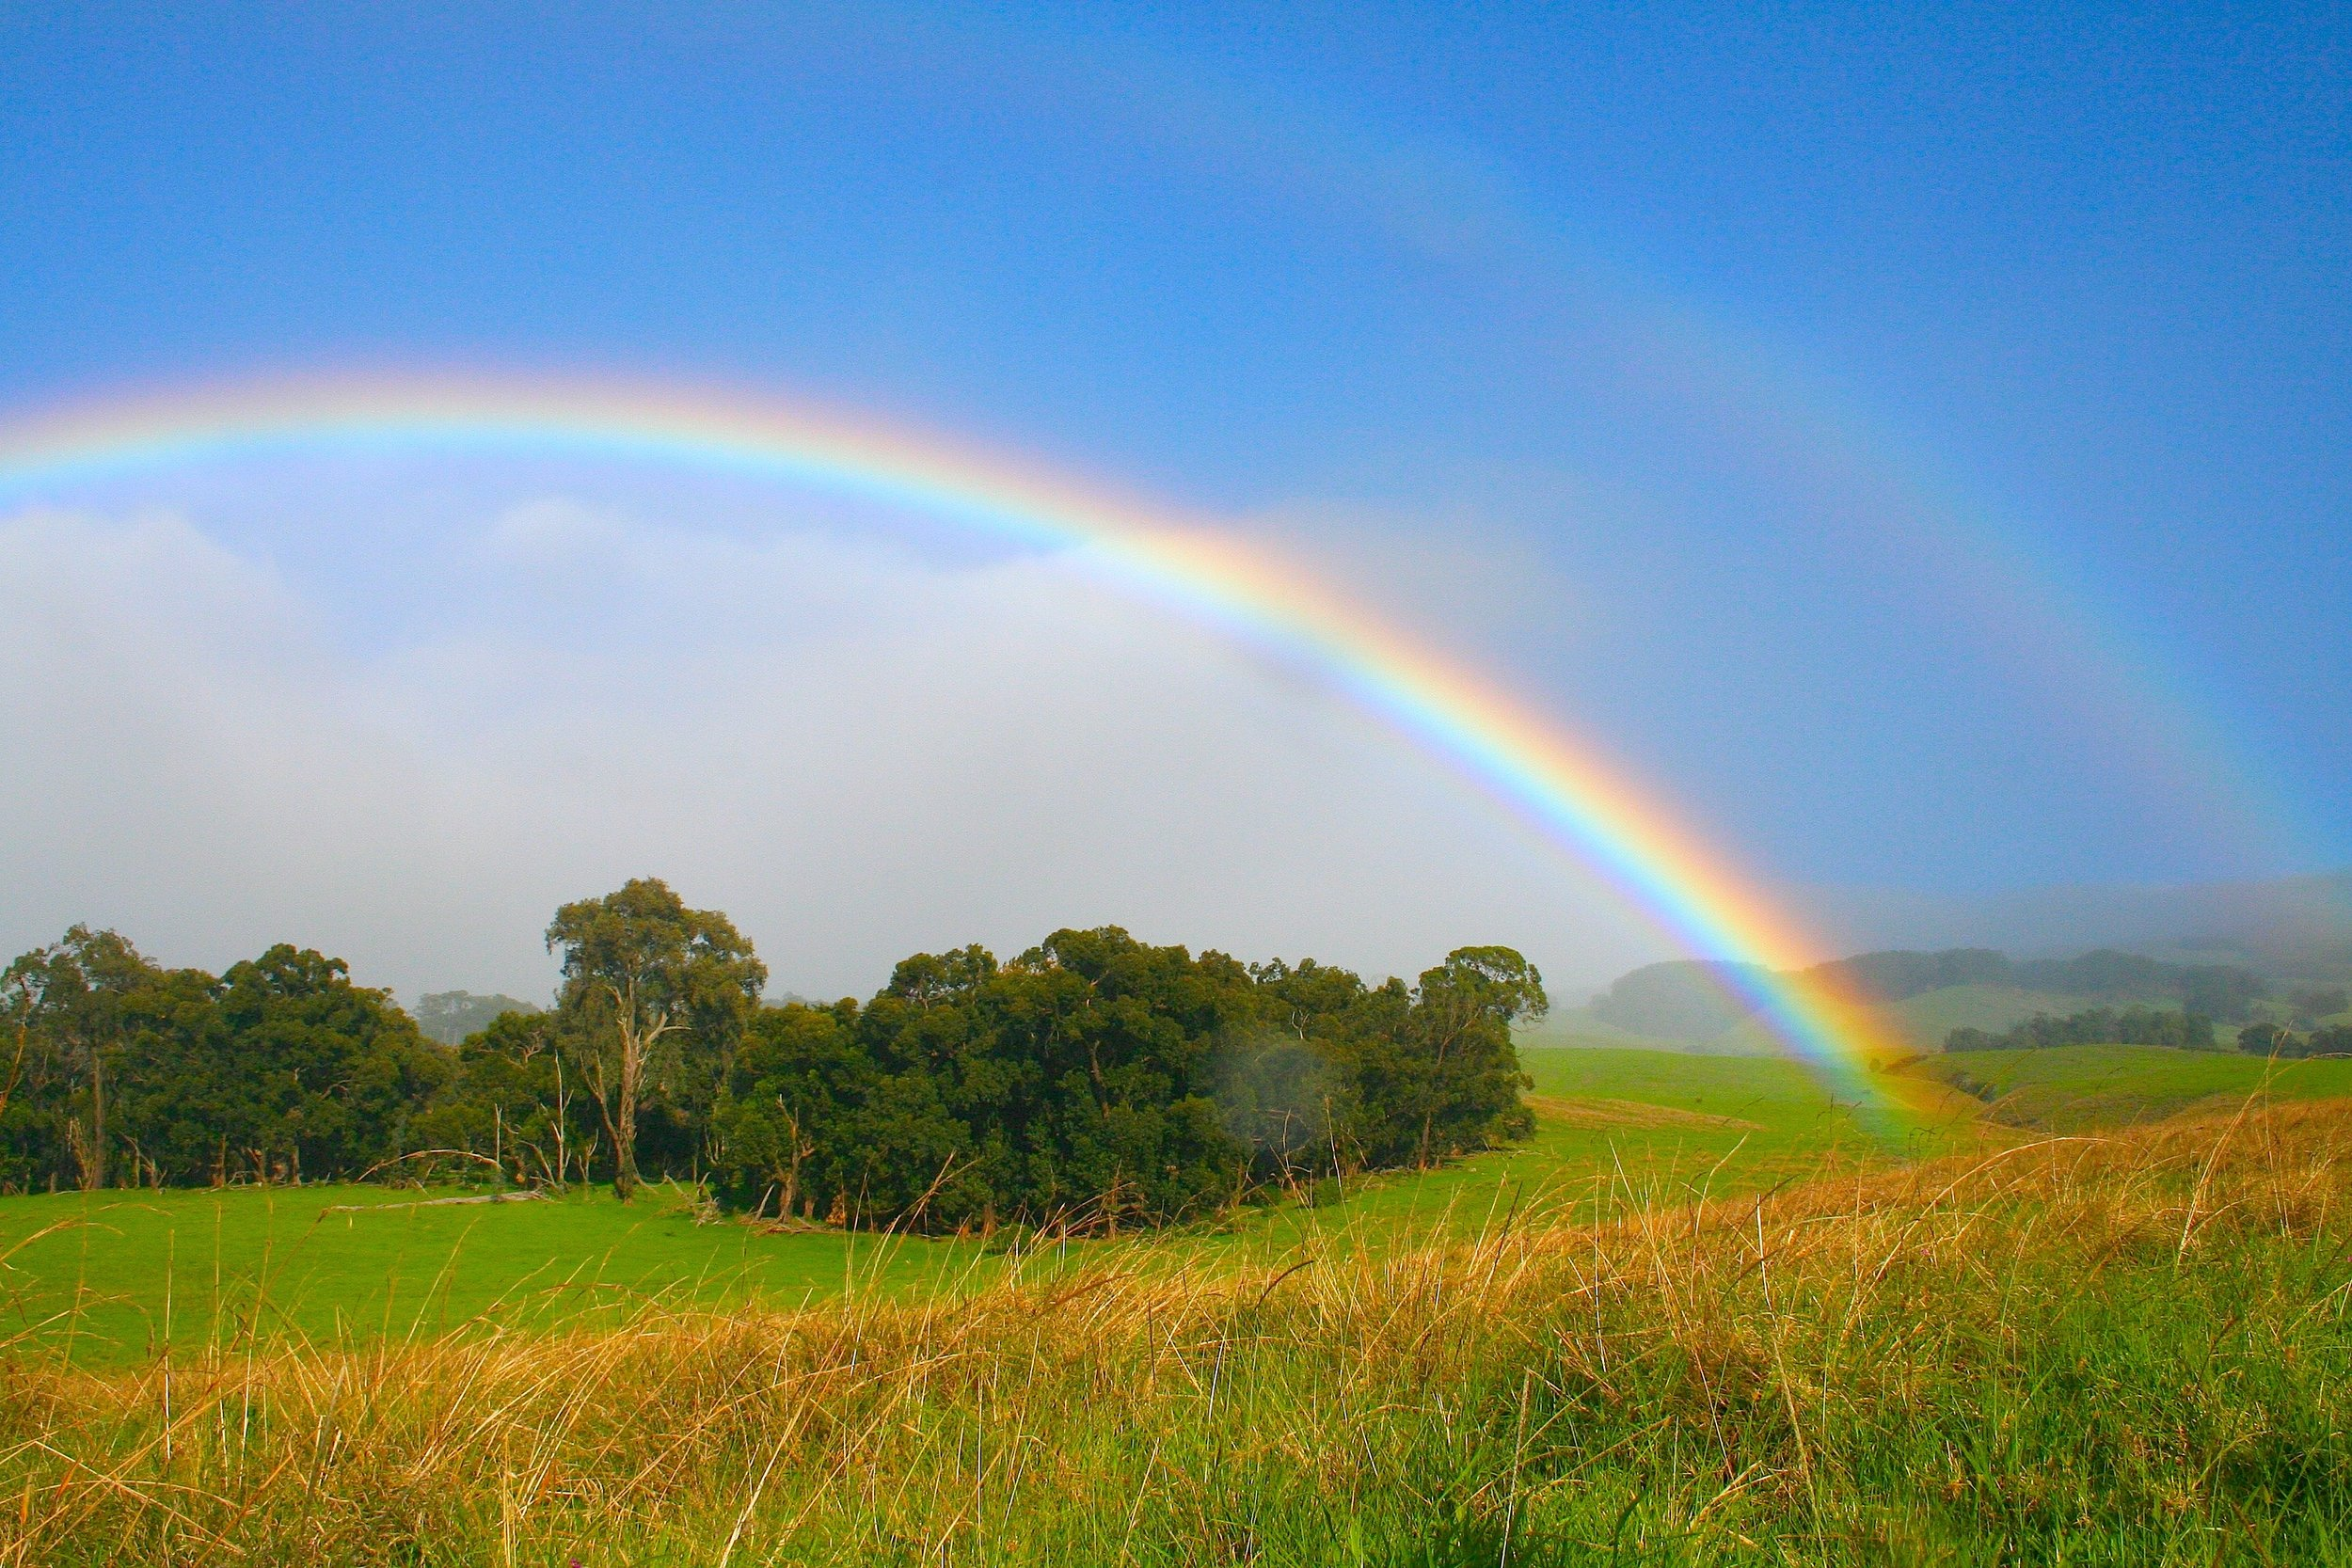 Rainbow over Hawaii — You have many aspects too just like the different colors and hues